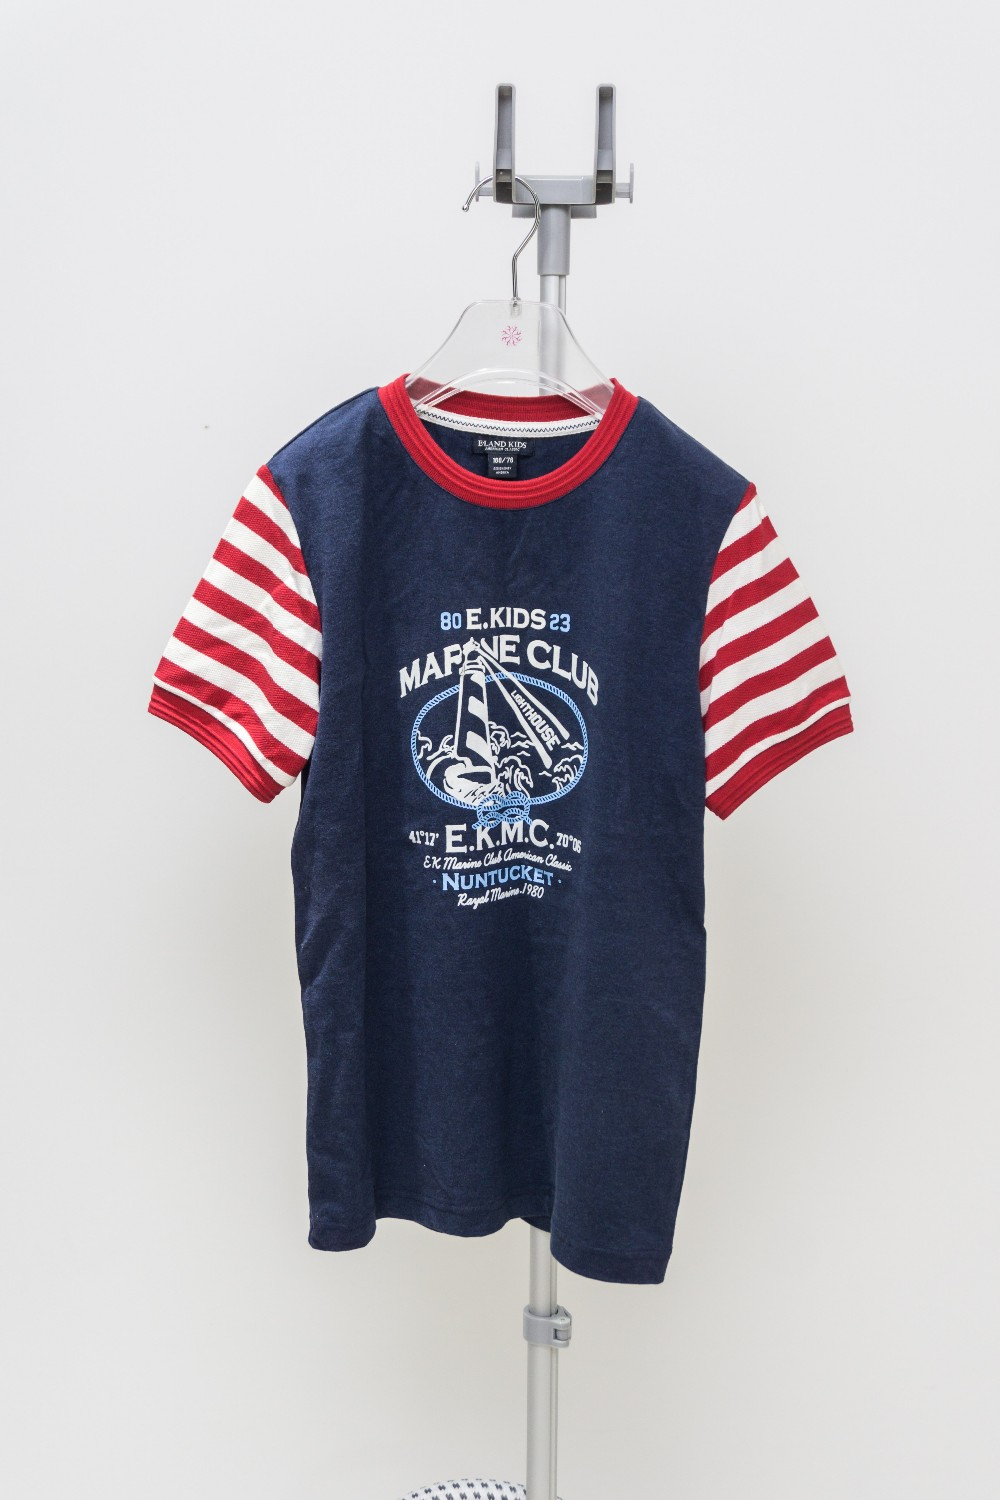 boys t-shirt blank tops wholesale cheap children chineses clothing